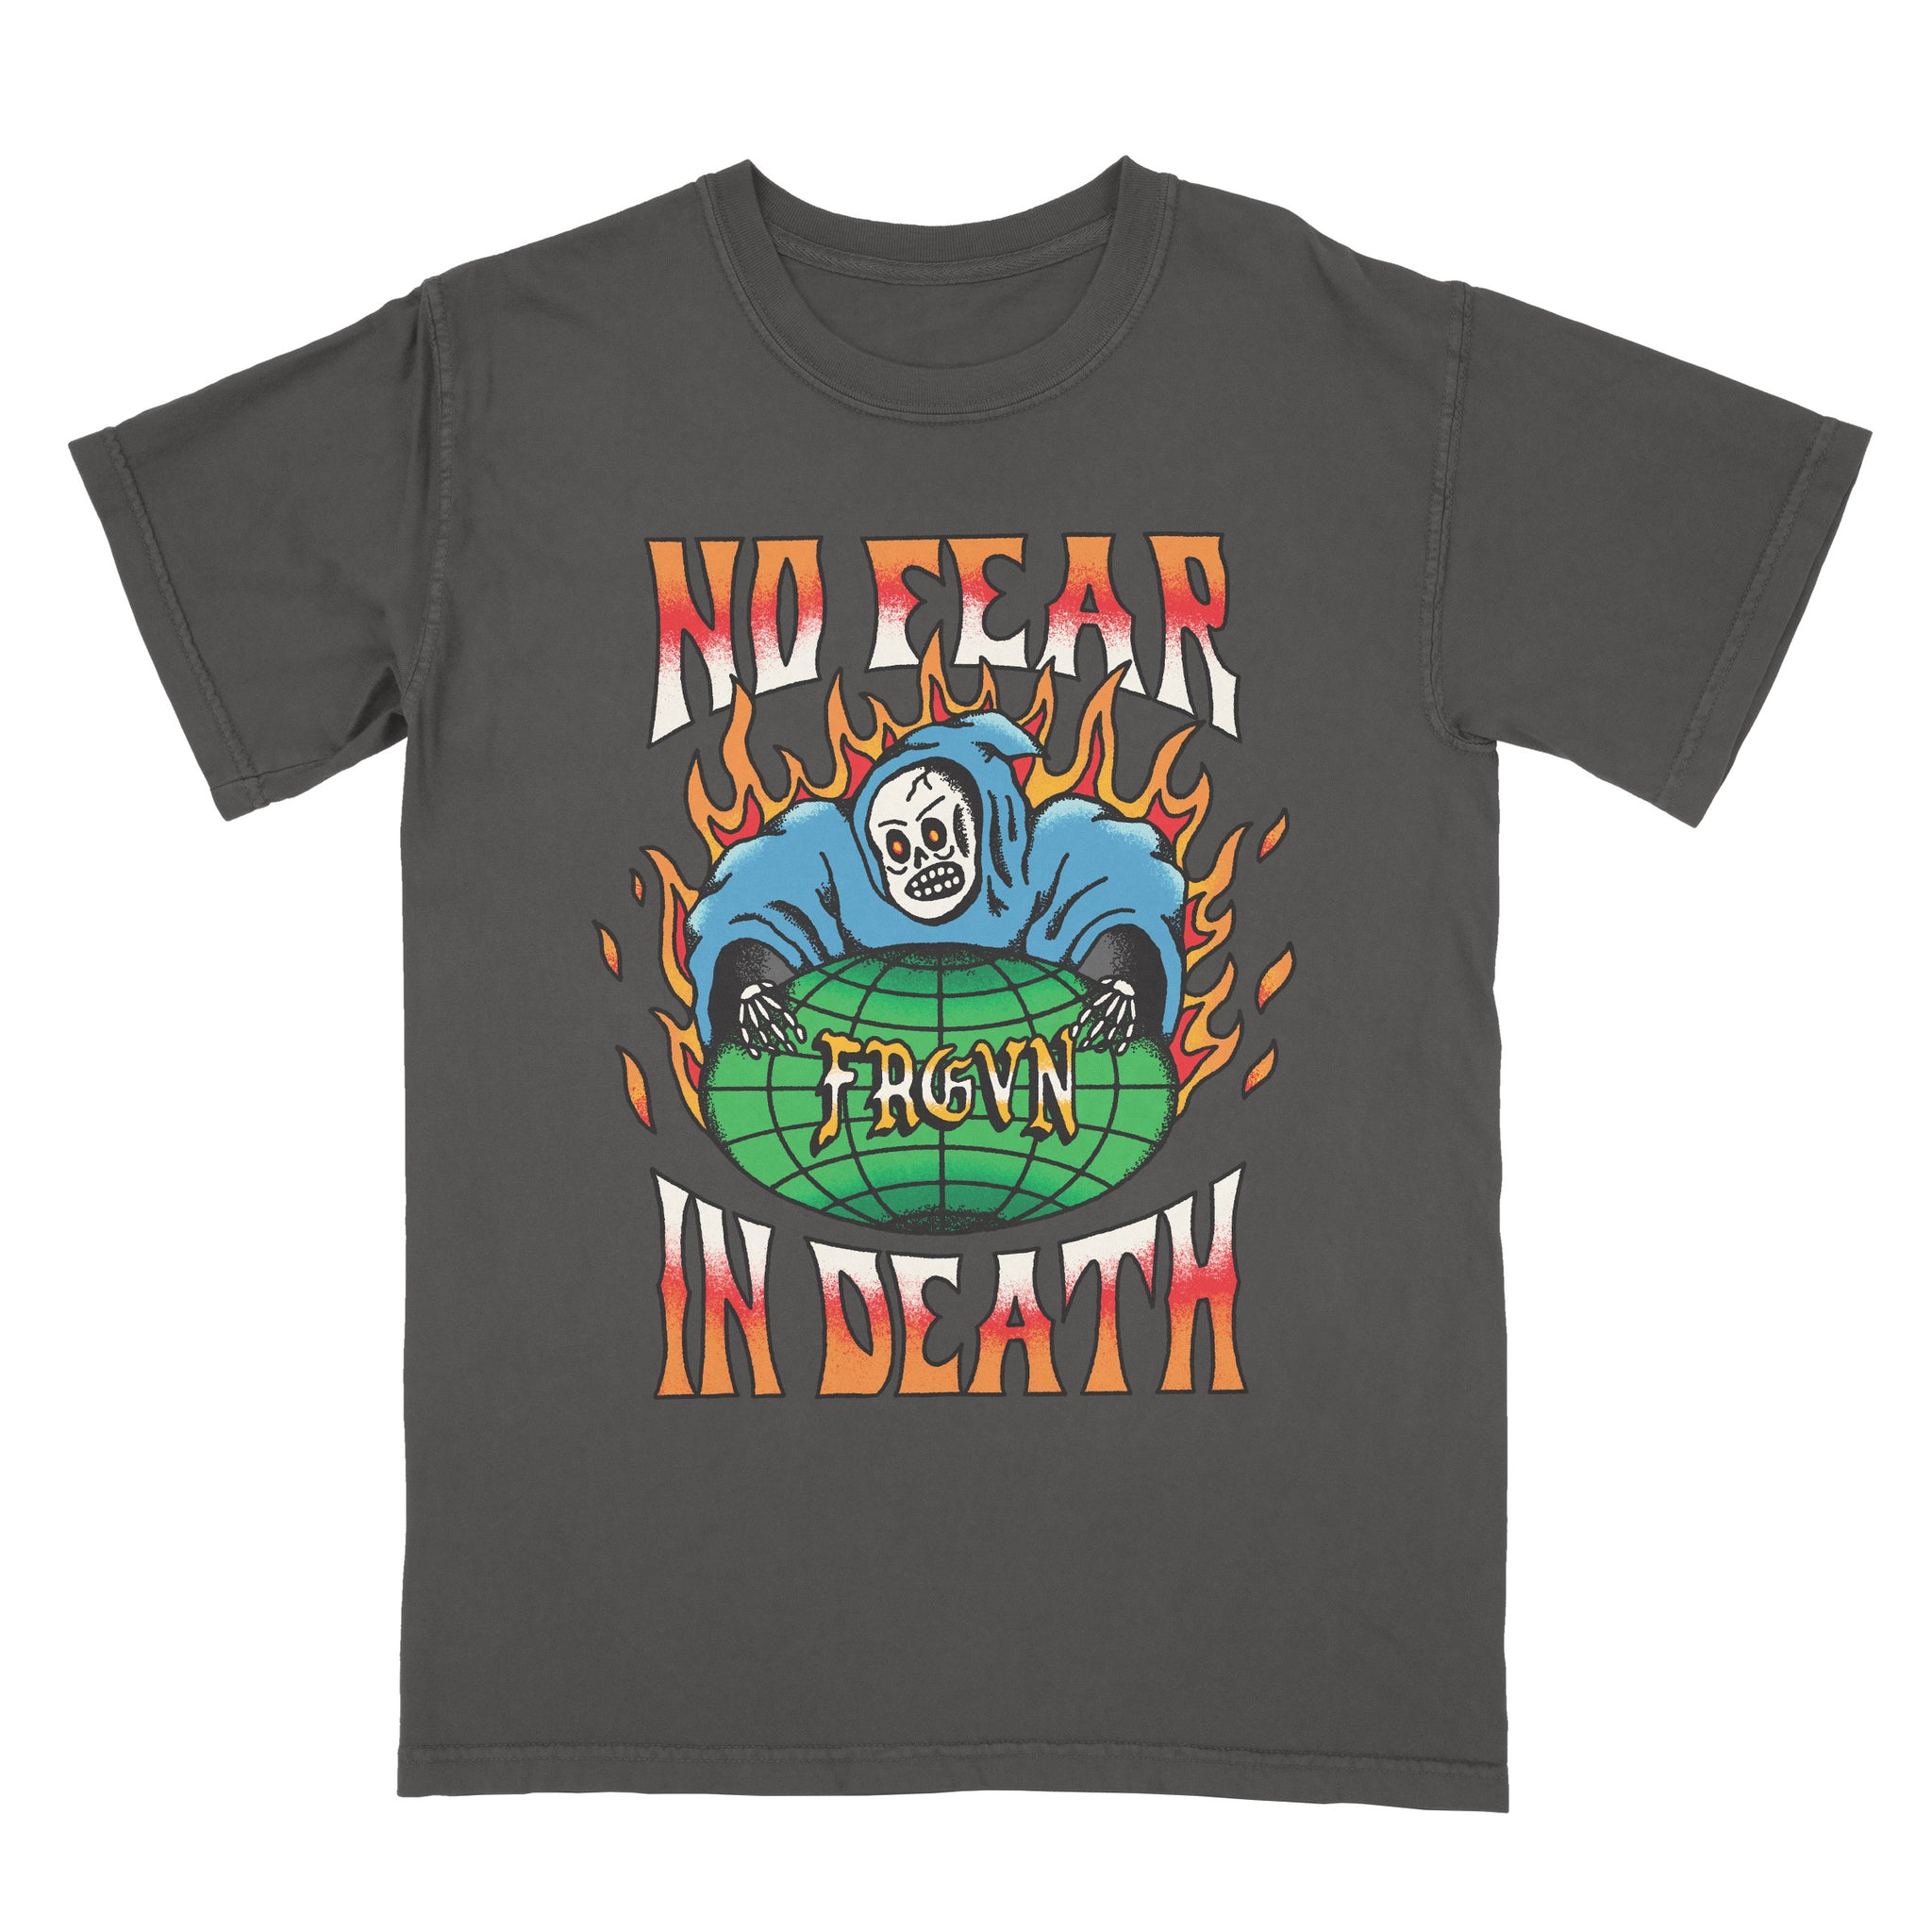 """No Fear in Death"" T-Shirt"